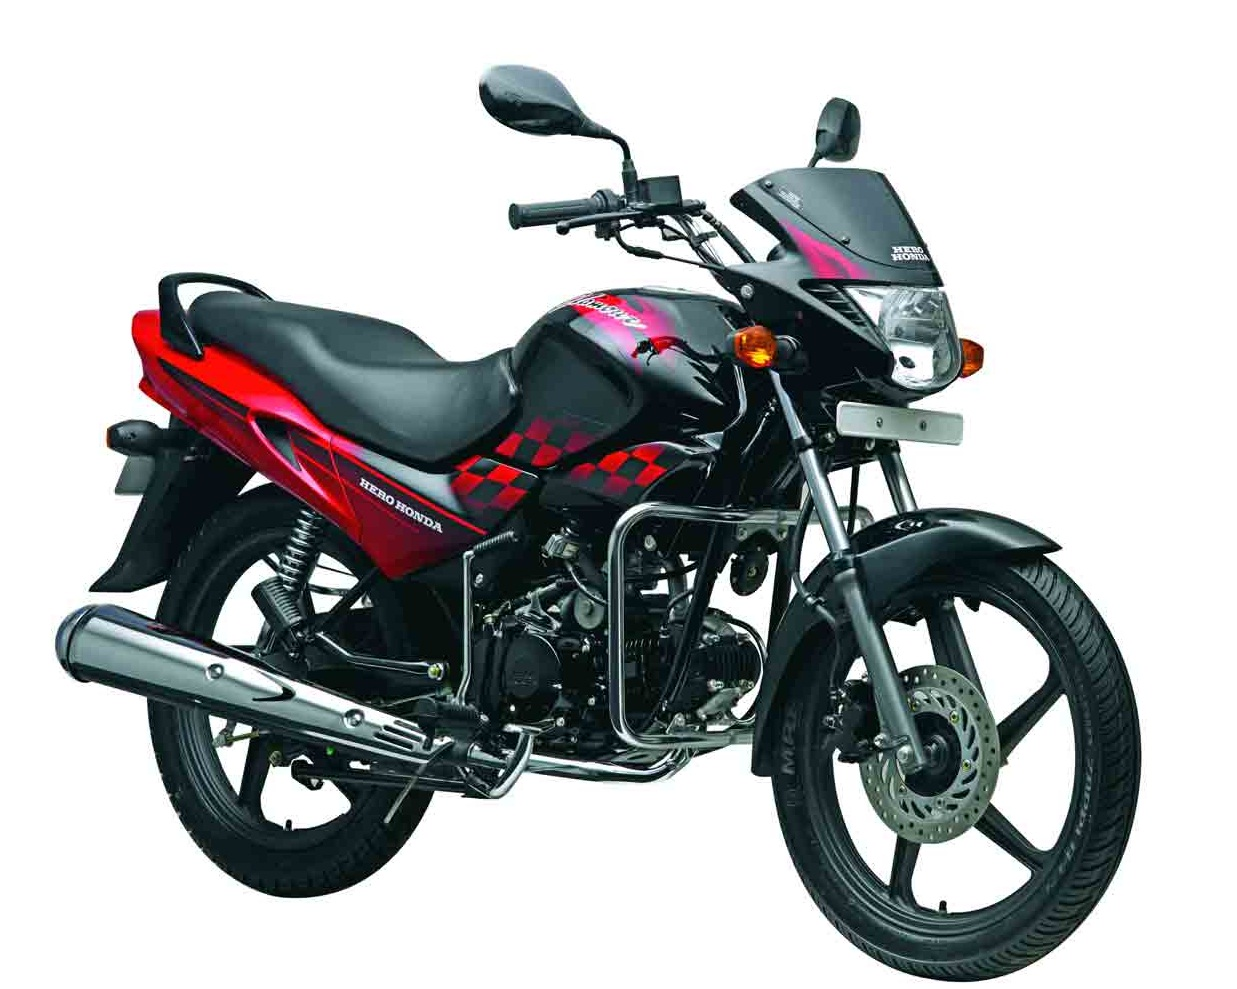 Hero Honda 125 Super Splendor images #74809